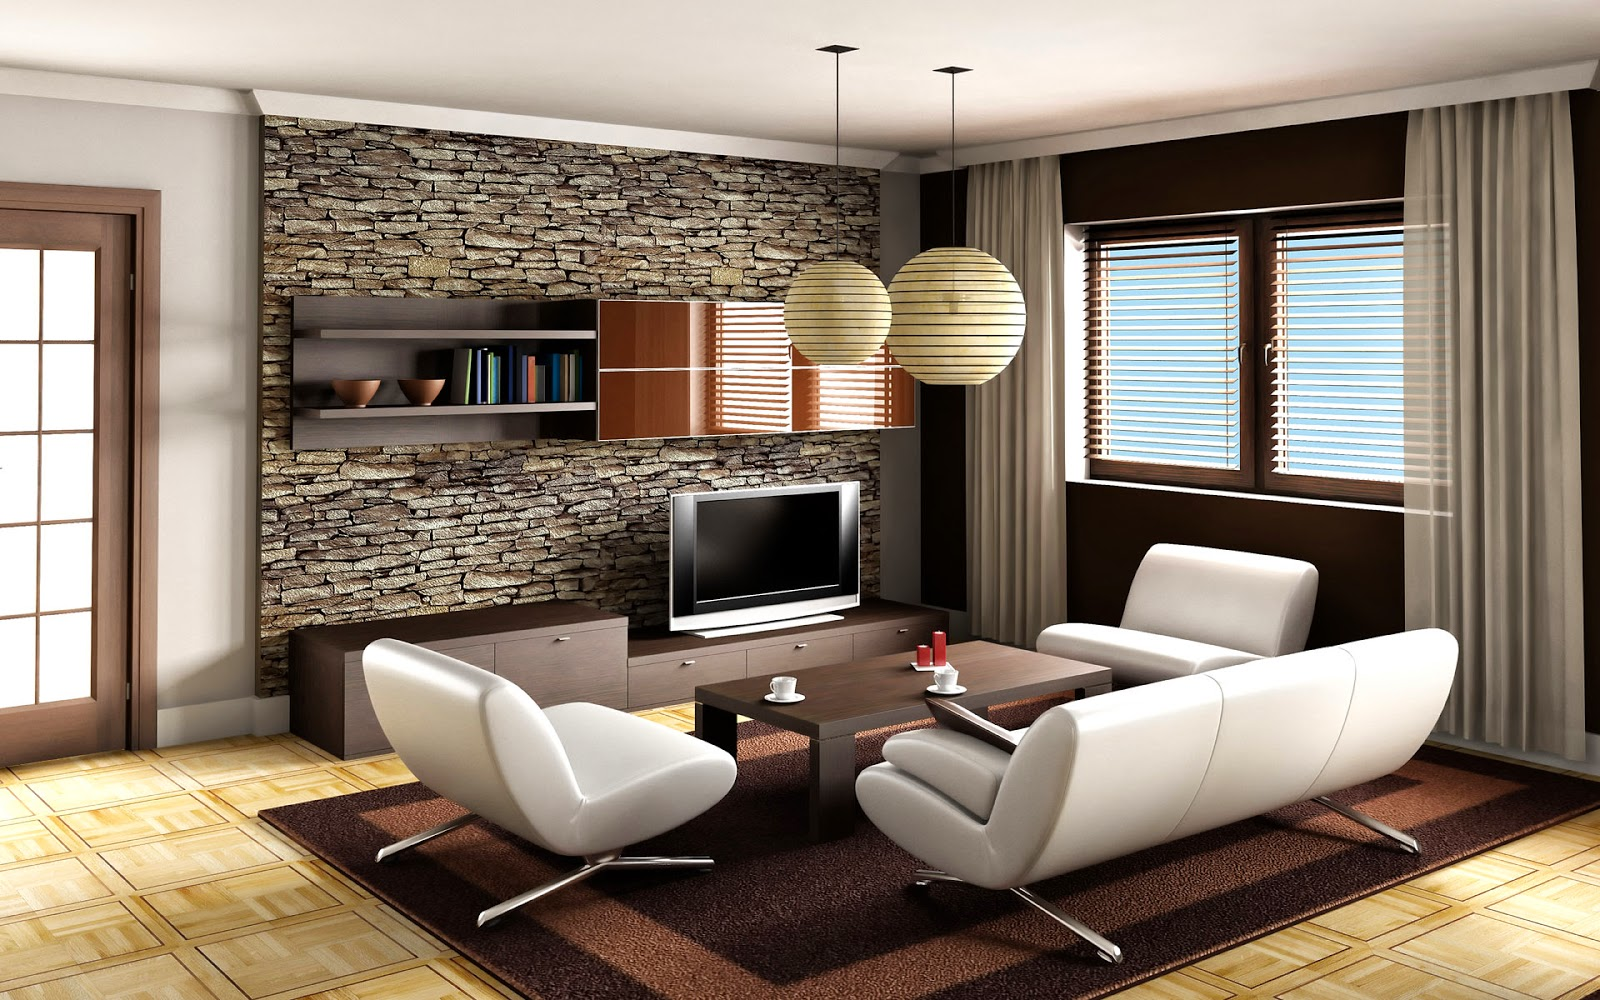 2 living room decor ideas brown leather sofa home design hd wallpapers. Black Bedroom Furniture Sets. Home Design Ideas